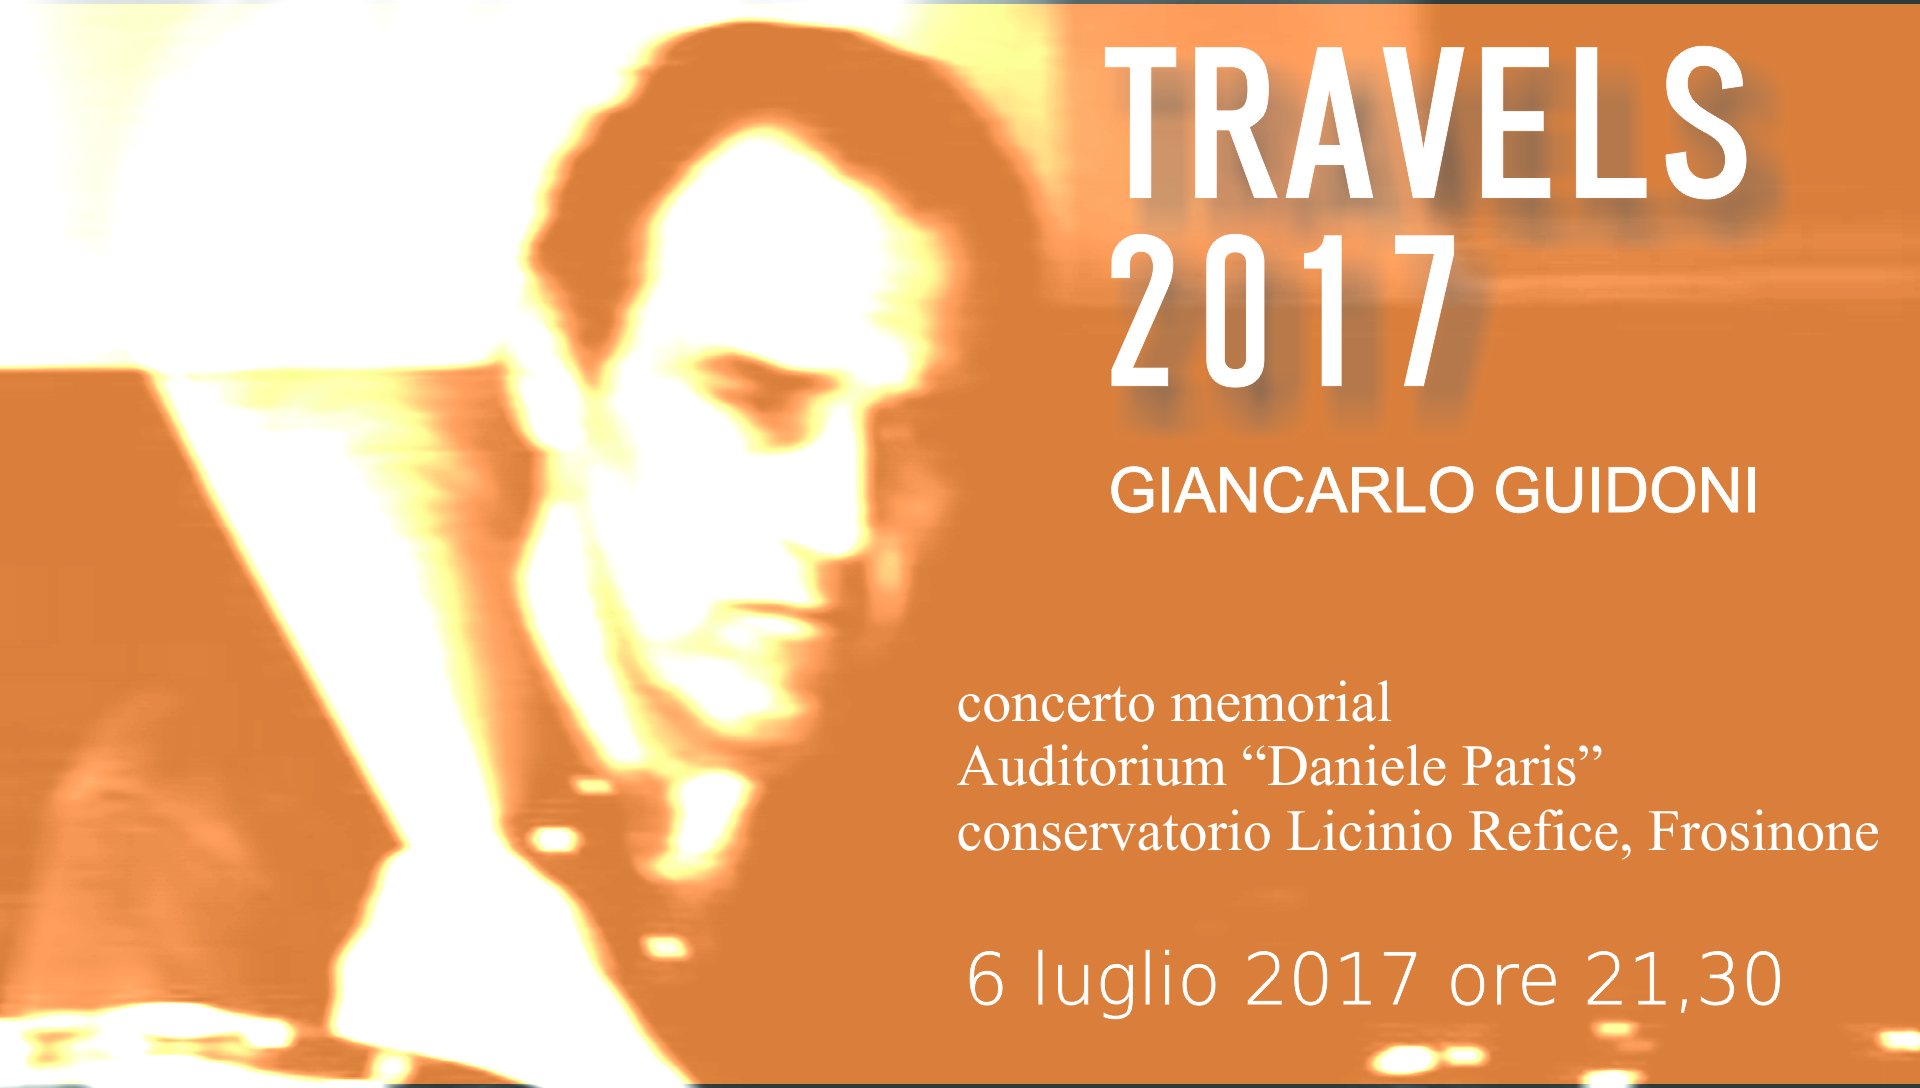 Travels 2017 - Giancarlo Guidoni Memorial